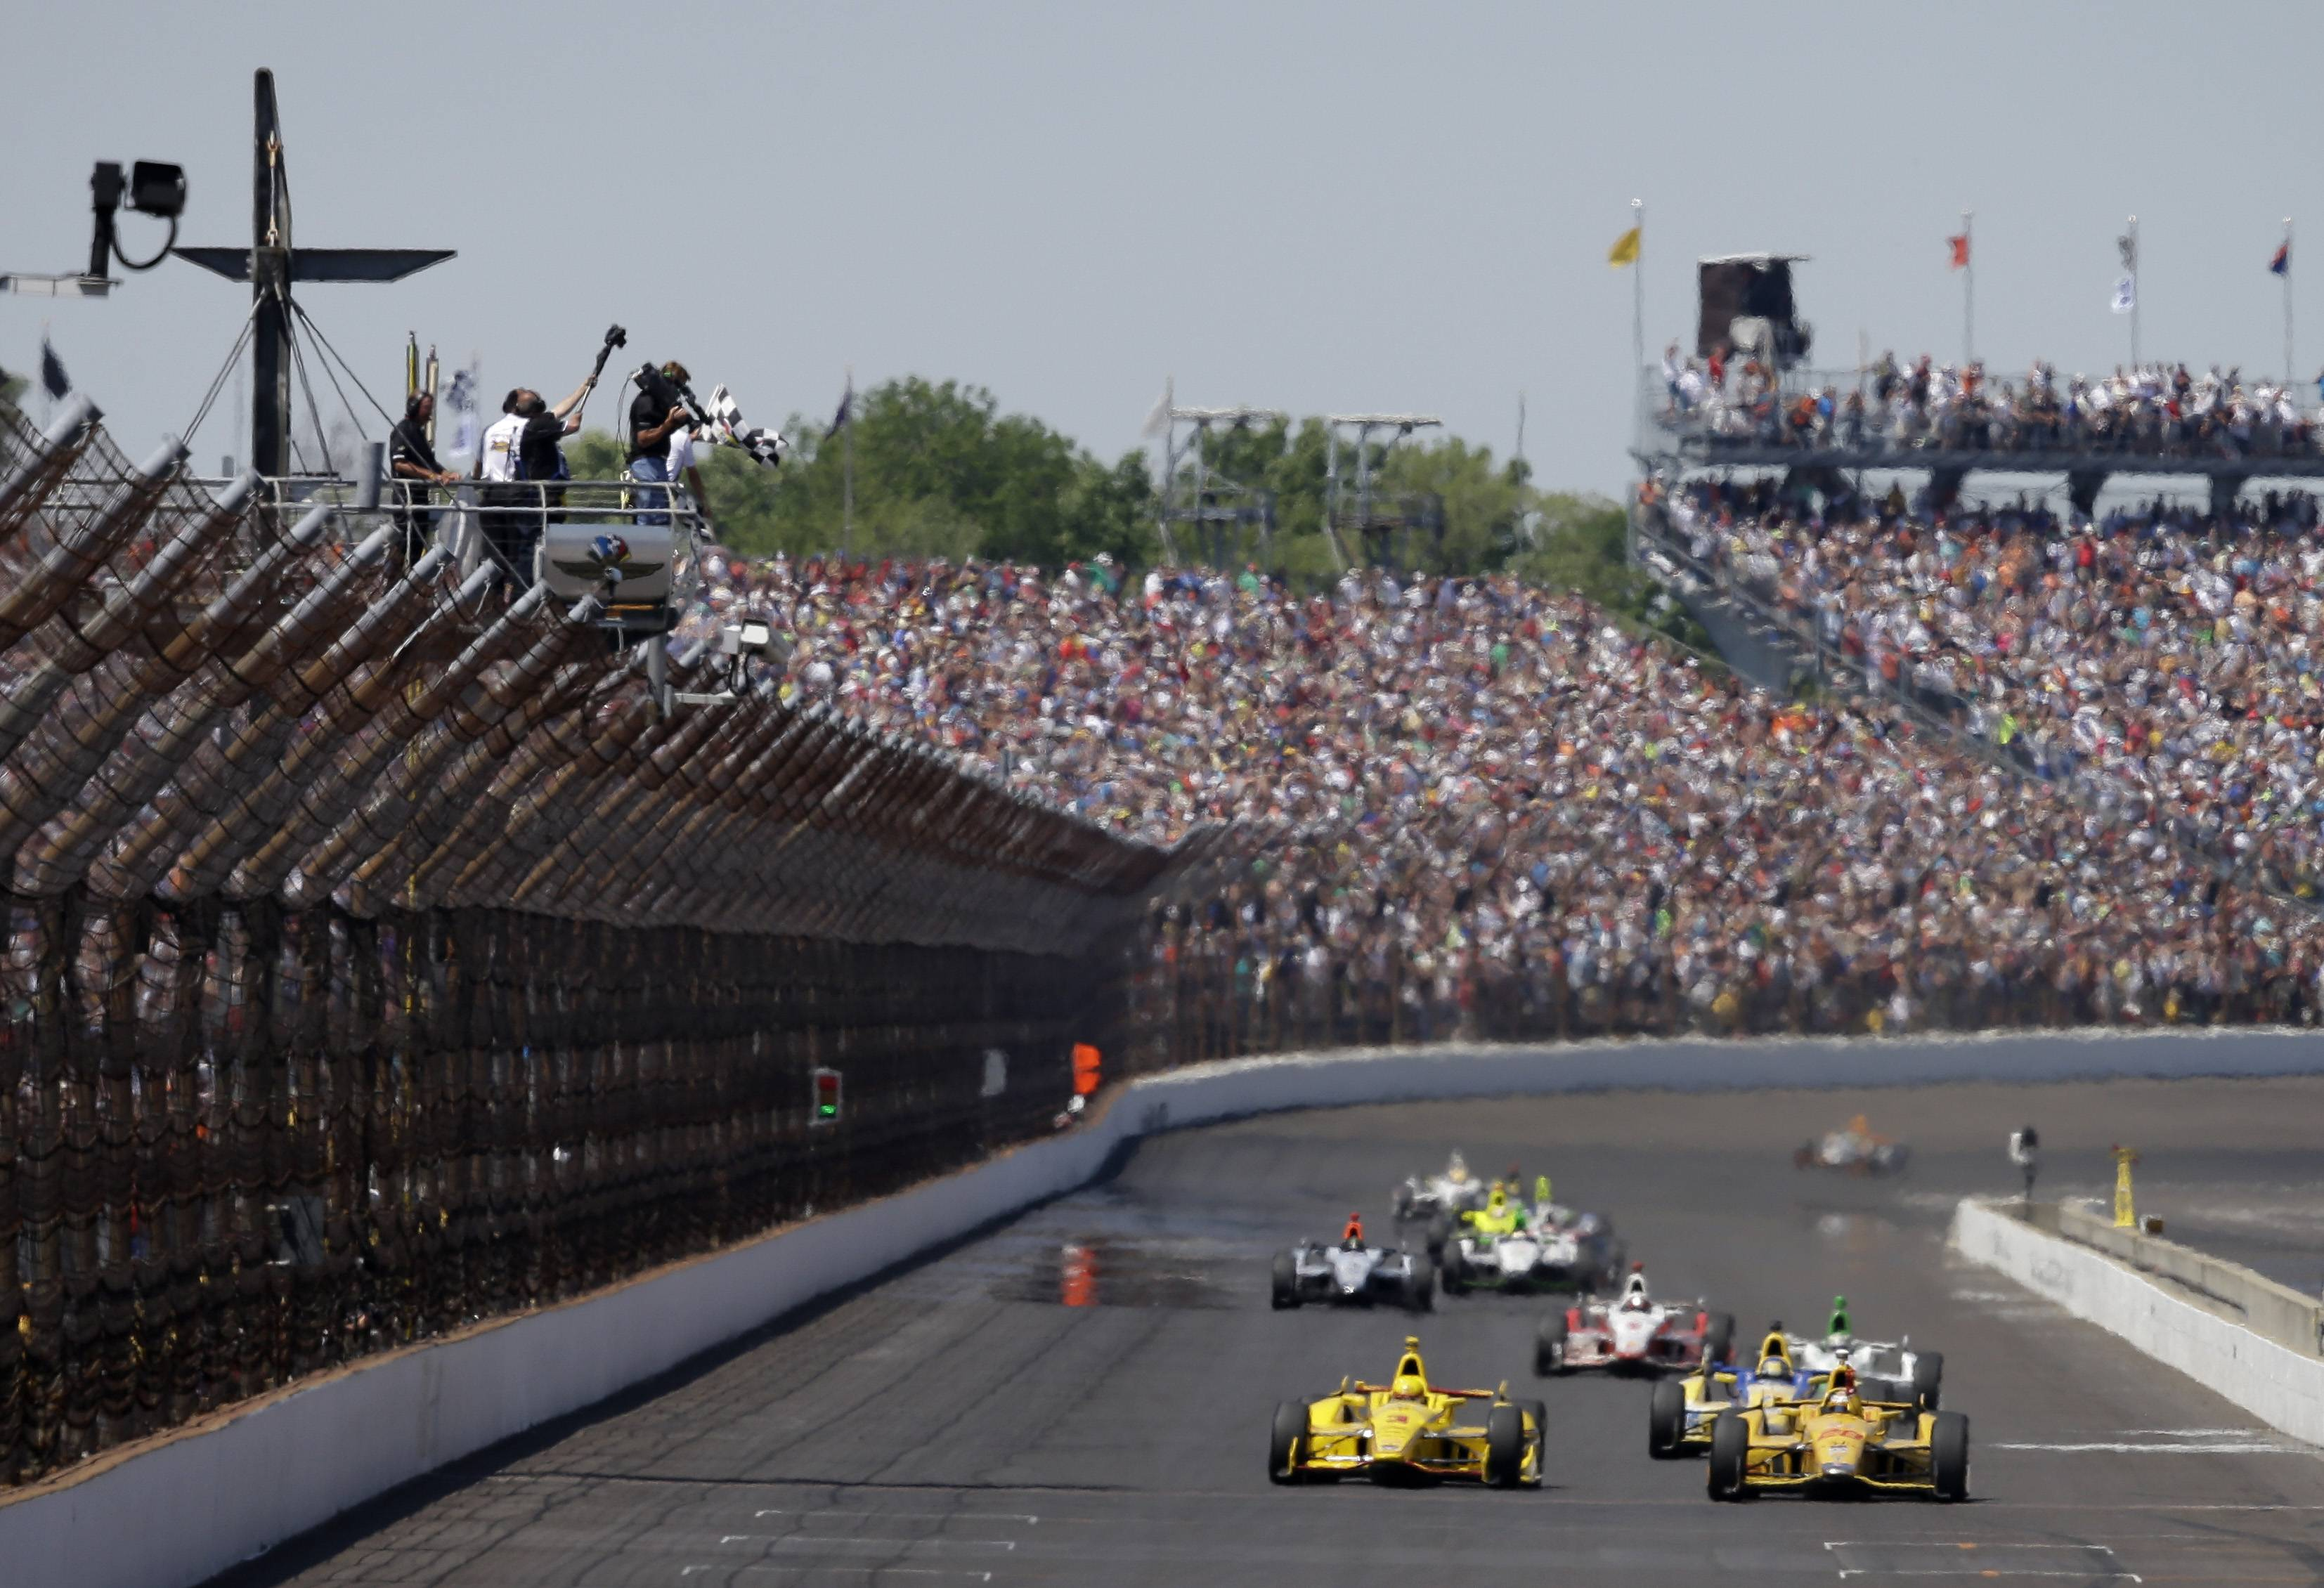 Ryan Hunter-Reay celebrates as he takes the checkered flag to win the 98th running of the Indianapolis 500 IndyCar auto race at the Indianapolis Motor Speedway in Indianapolis, Sunday.